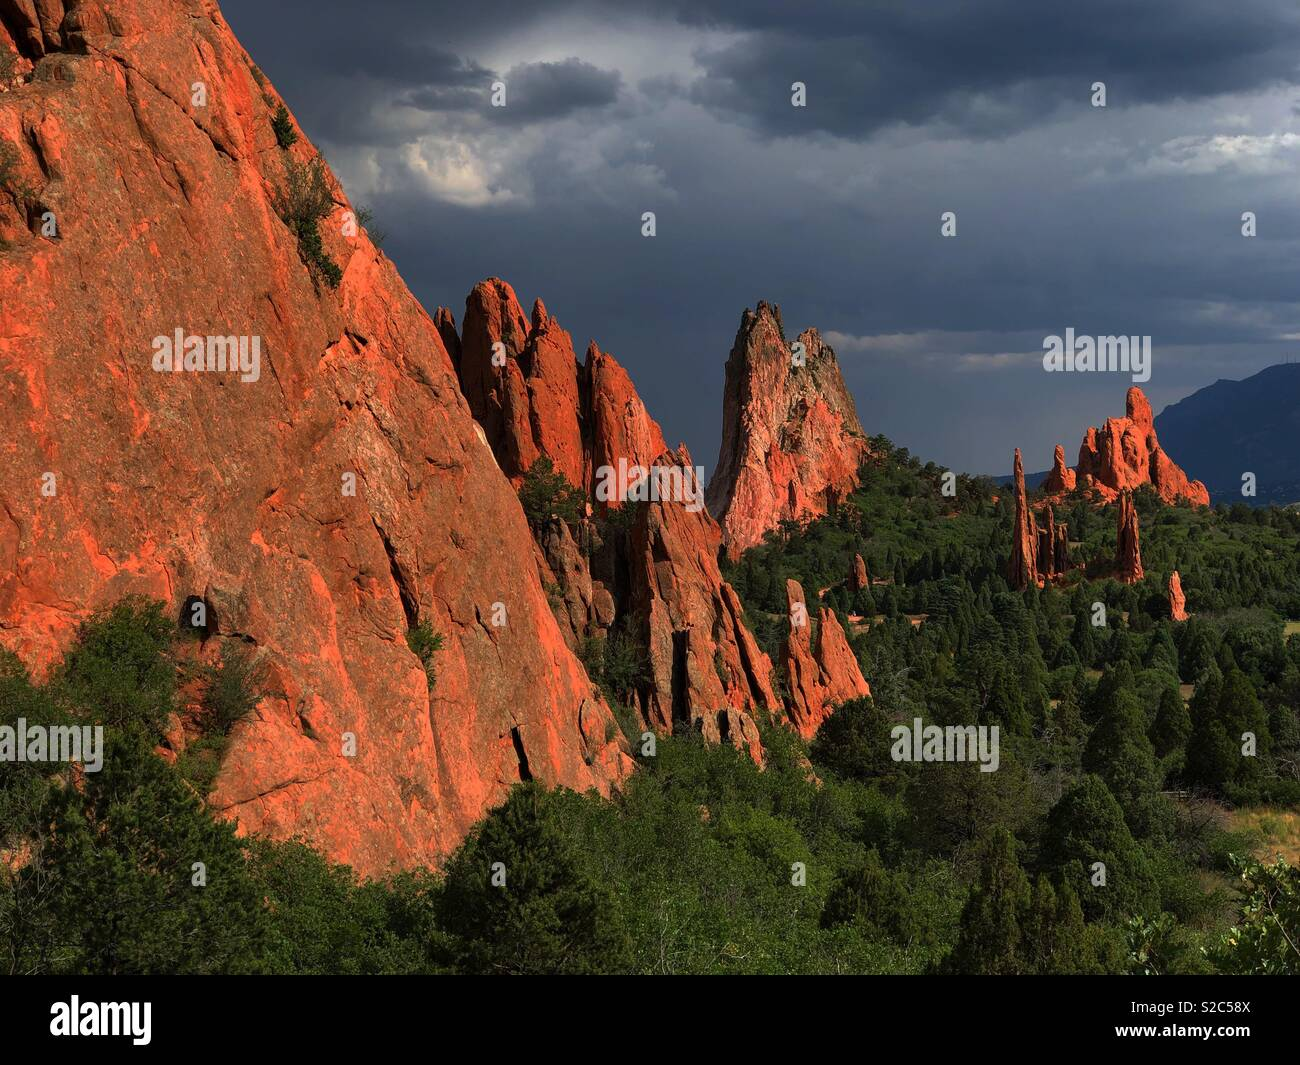 Taken right before it rained, the sky had a perfect color for a nice stormy sky pic. Rocks had a beautiful red tint to them. - Stock Image